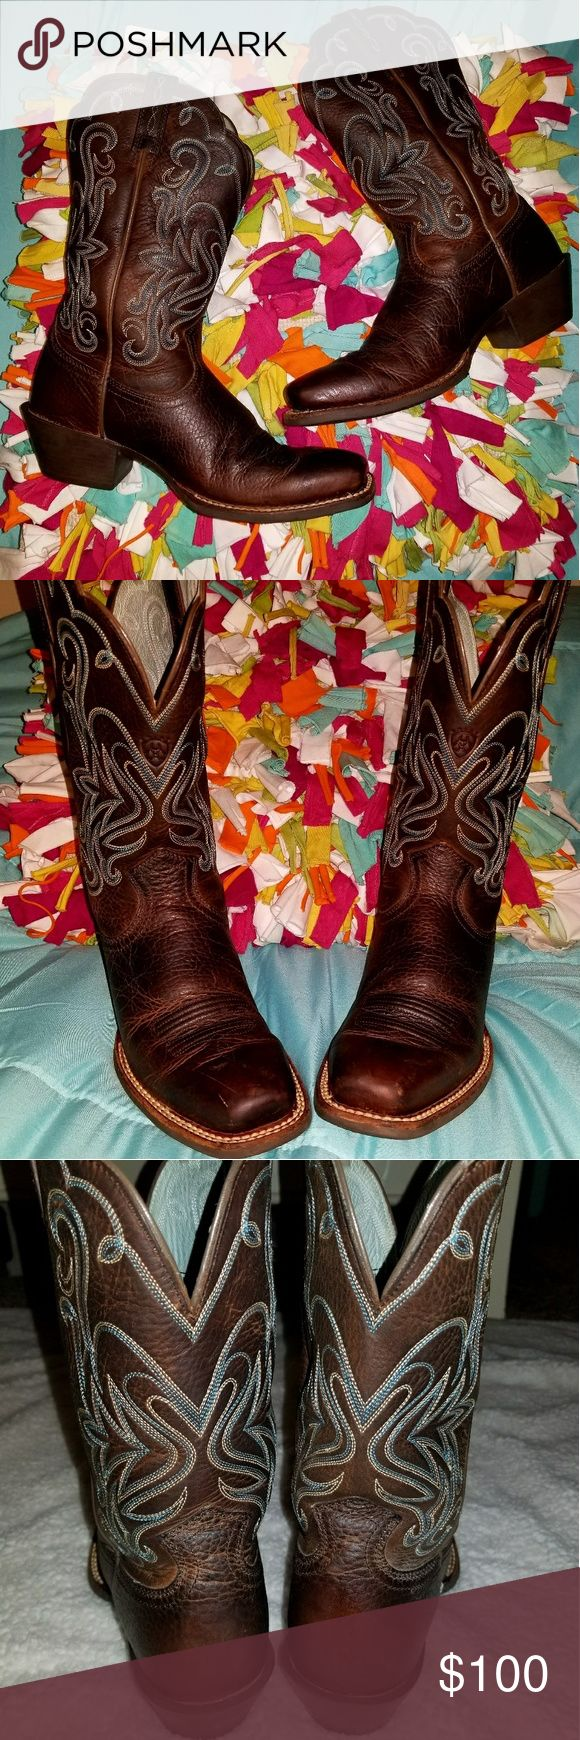 Womens New Ariat boots 💖 Women's new Ariat boots size 7.5B....They were worn one time around my house and never wore again so they are just taking up space. I paid $180+tax for them at cavenders so would like to get $100 OBO. I'm located Yukon, Oklahoma. Will ship or meet if your close to me. If interested/have any additional questions or additiona pictures you can text me at 4056682480 or email t23j25m2@gmail.com 💖💖💖 Ariat Shoes